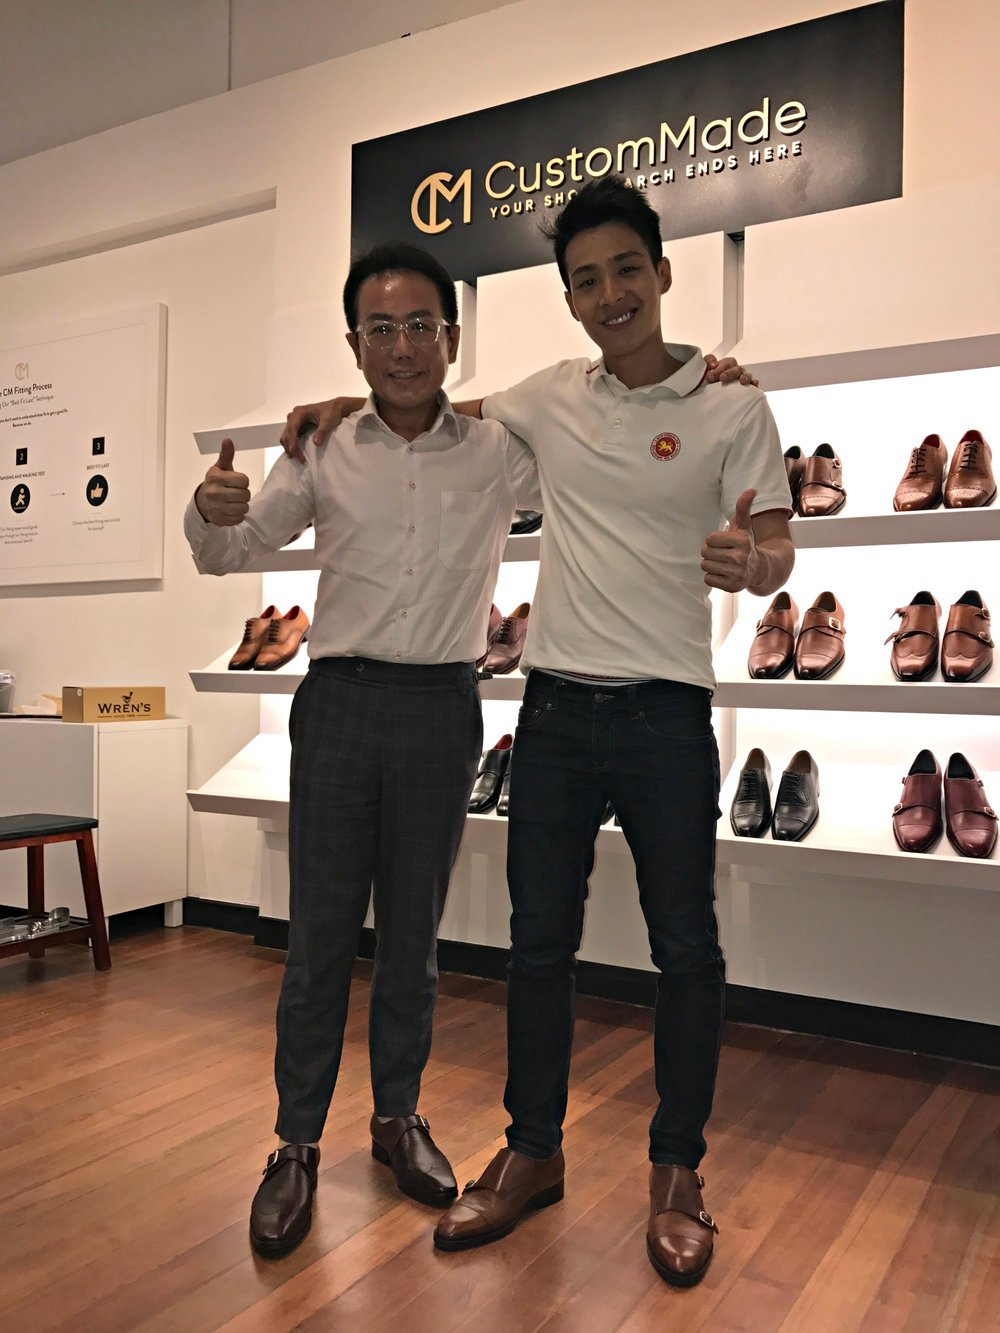 Another happy client with his CustomMade shoe -